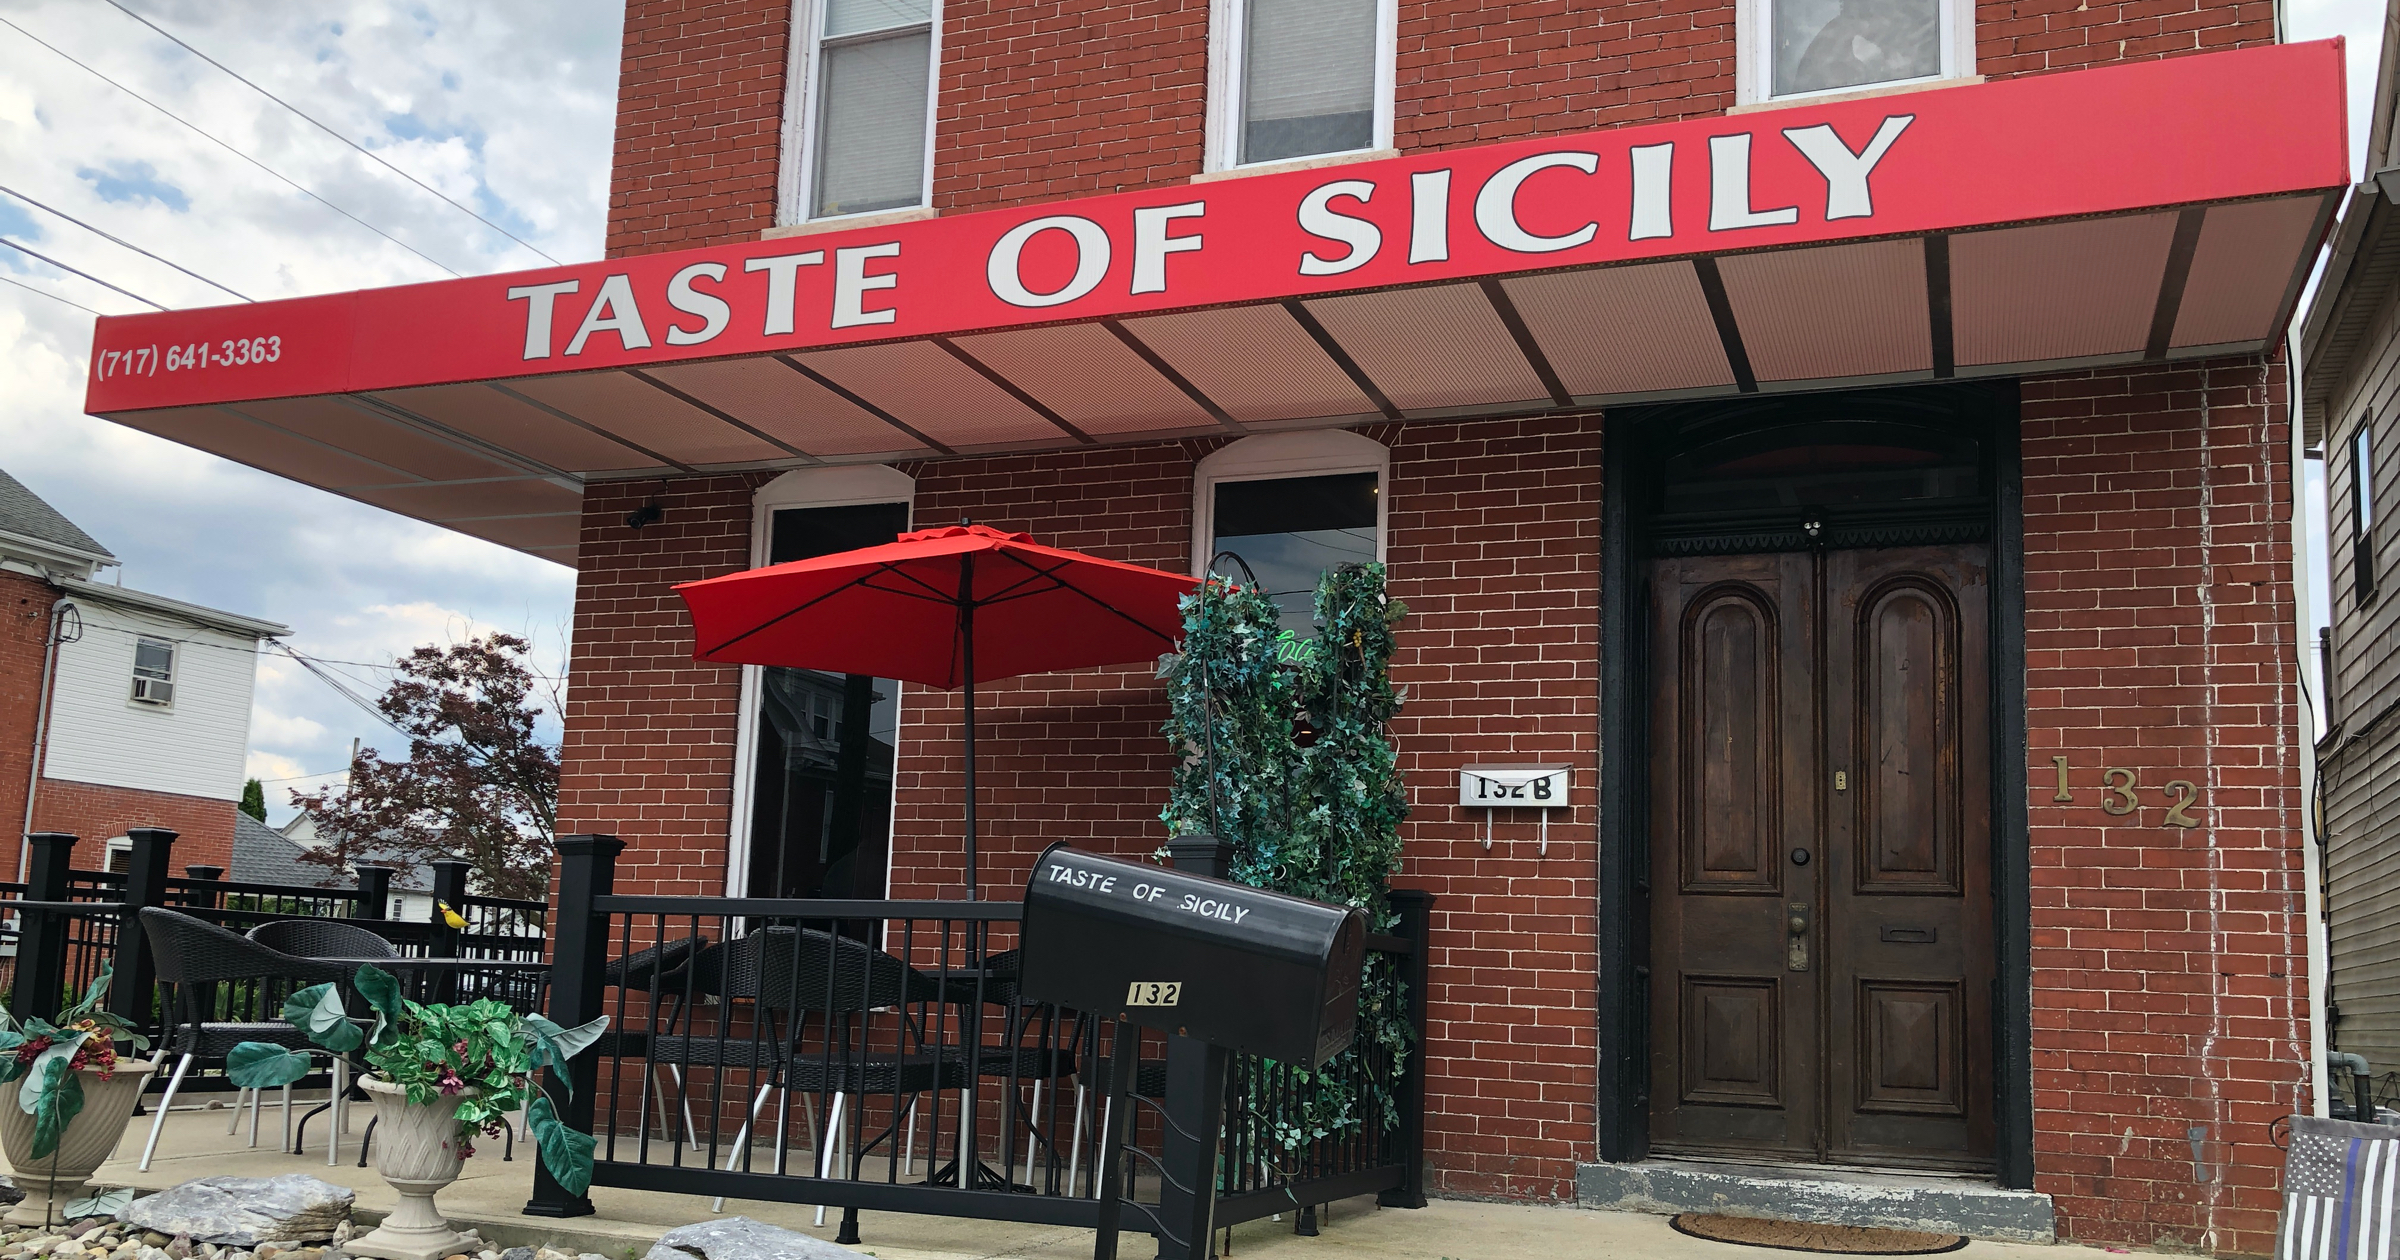 Fourth fine for Taste of Sicily brings total up to $10k, owners seek Trump visit